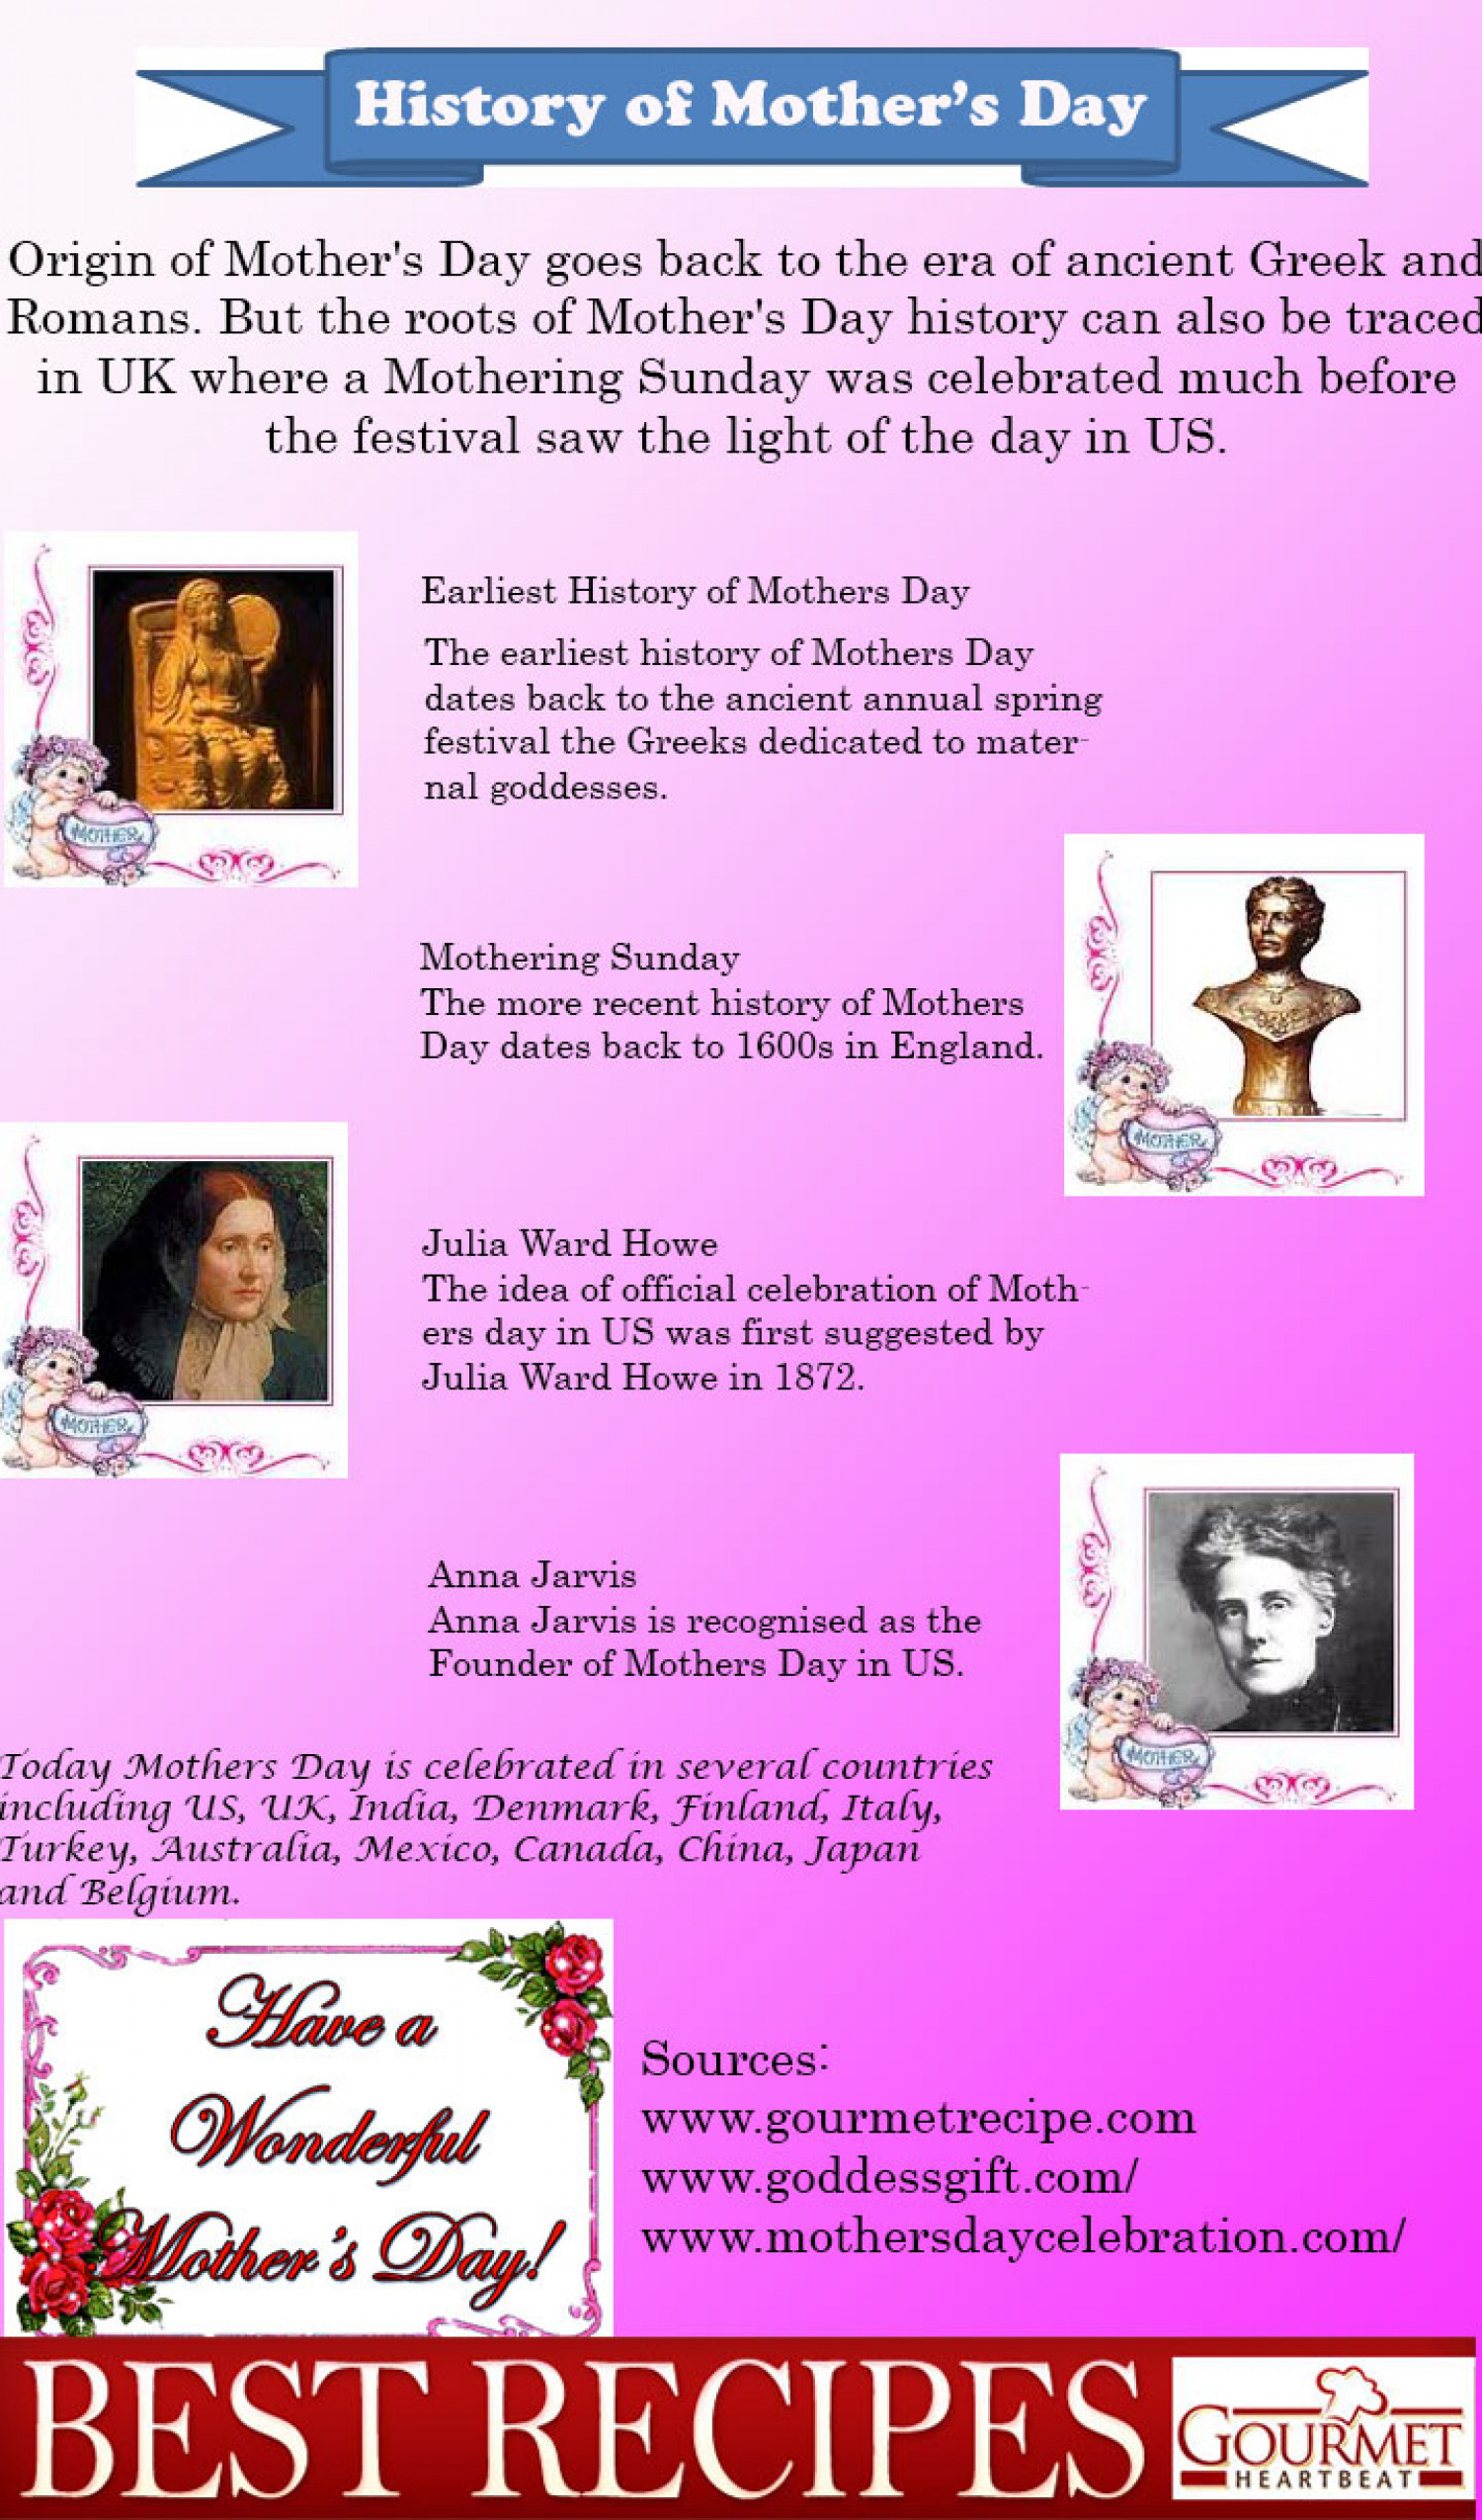 History of Mother's Day Infographic